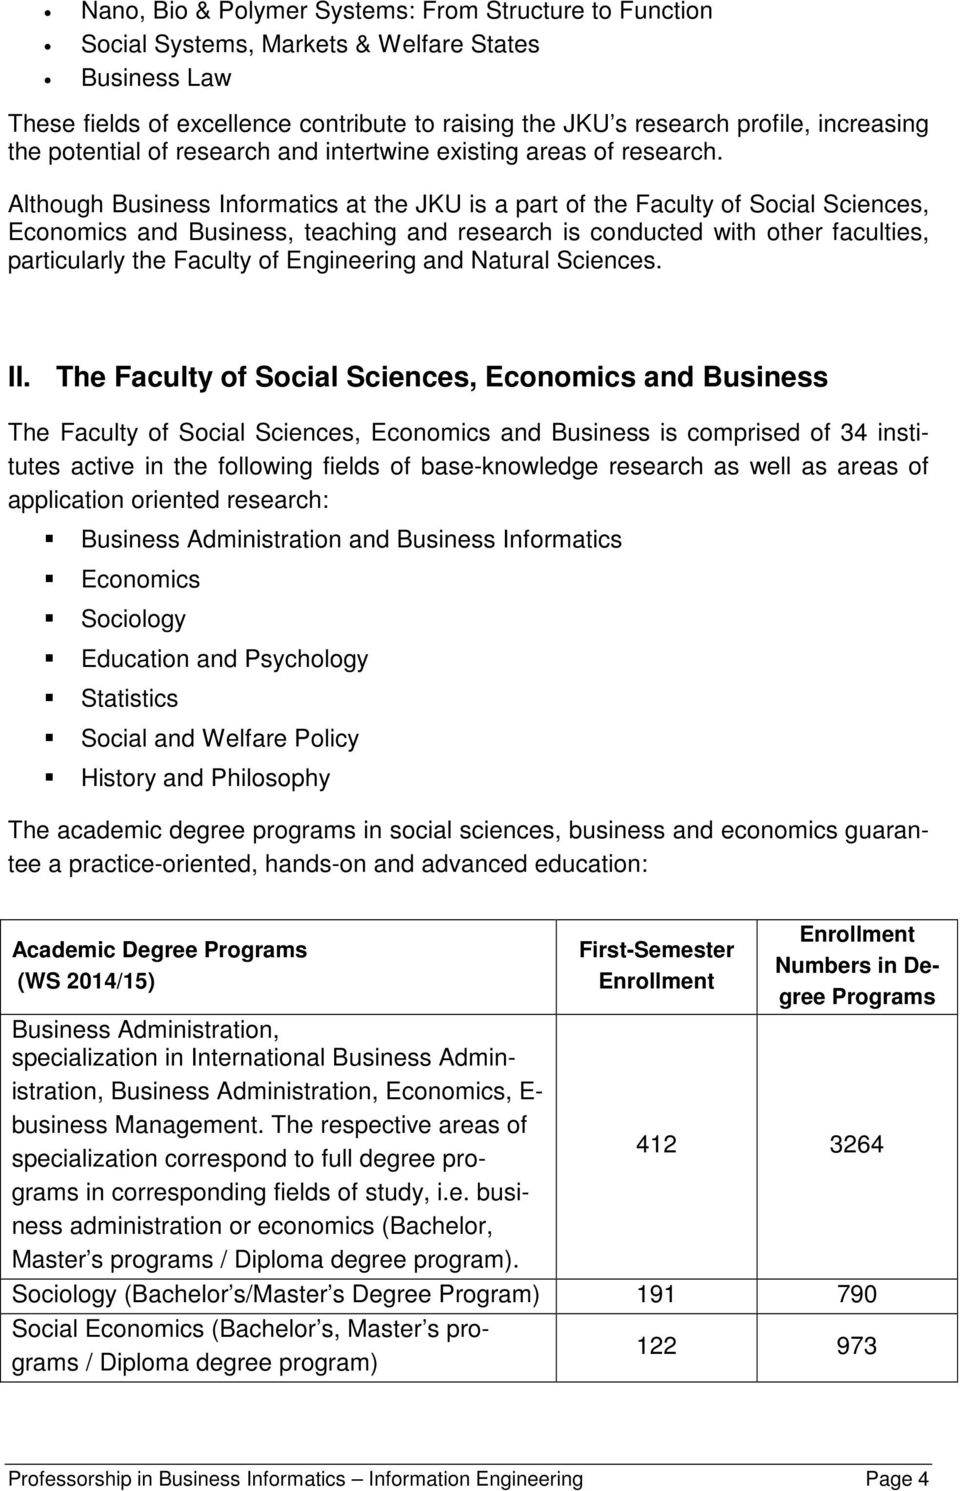 Although Business Informatics at the JKU is a part of the Faculty of Social Sciences, Economics and Business, teaching and research is conducted with other faculties, particularly the Faculty of